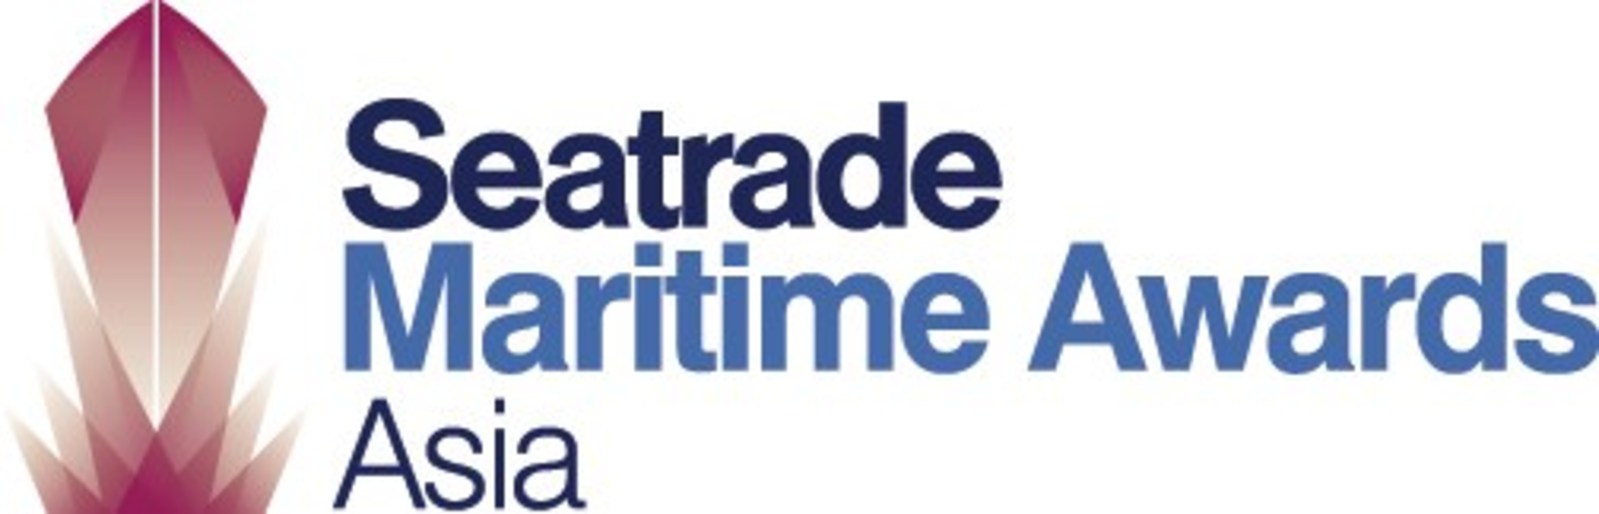 Seatrade Maritime Awards Asia logo (PRNewsfoto/Seatrade Communications)